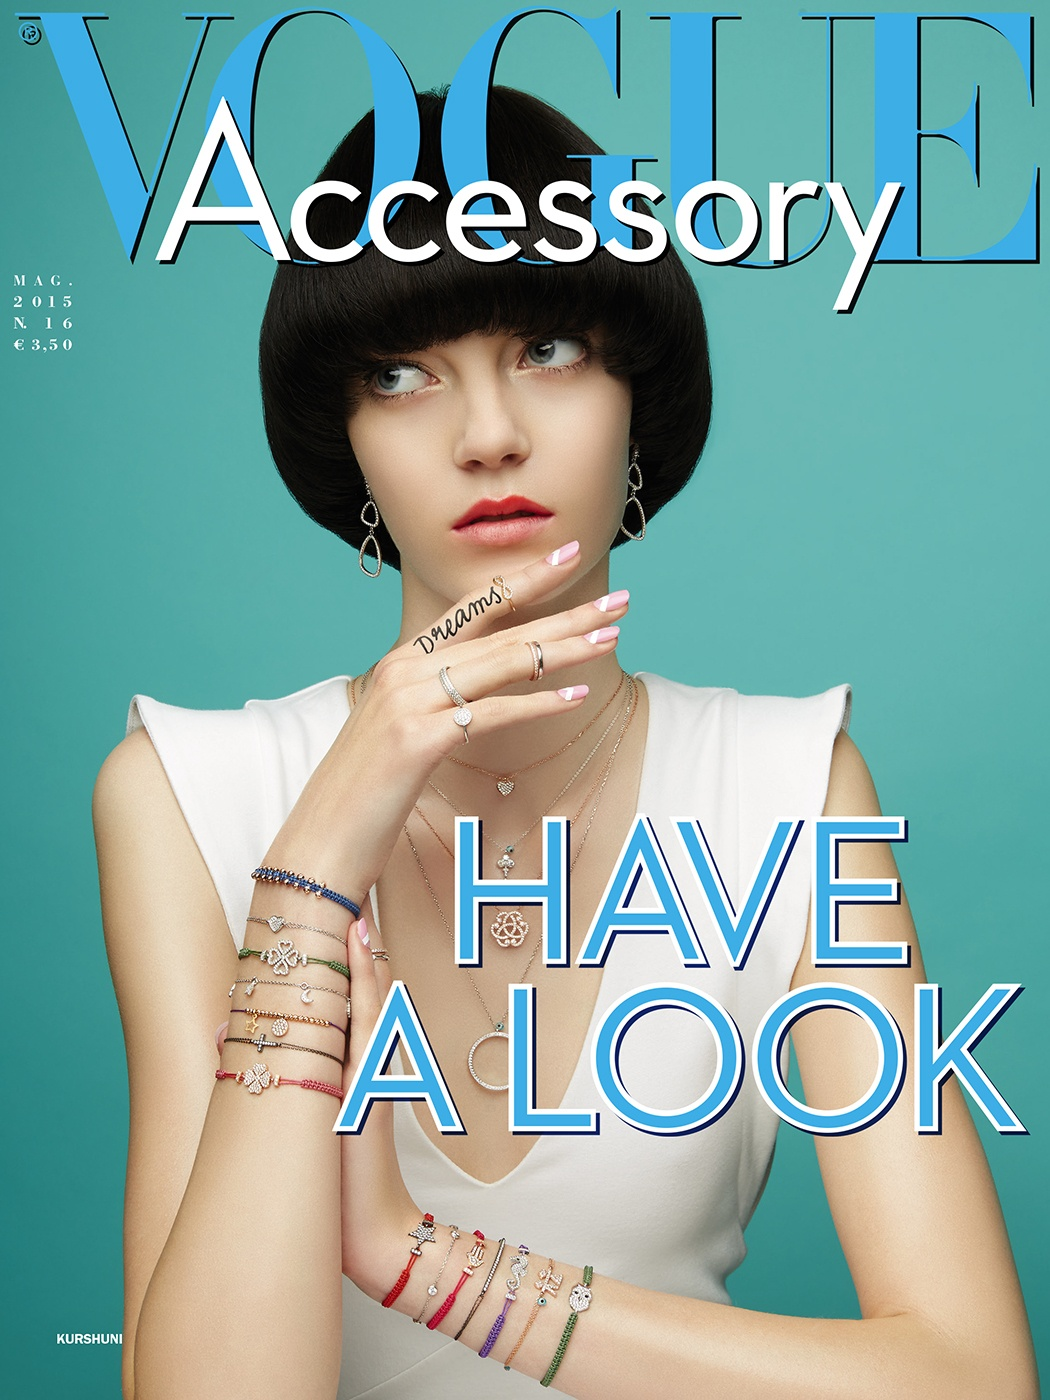 Vogue Accessory Cover Kurshuni editorial conde nast